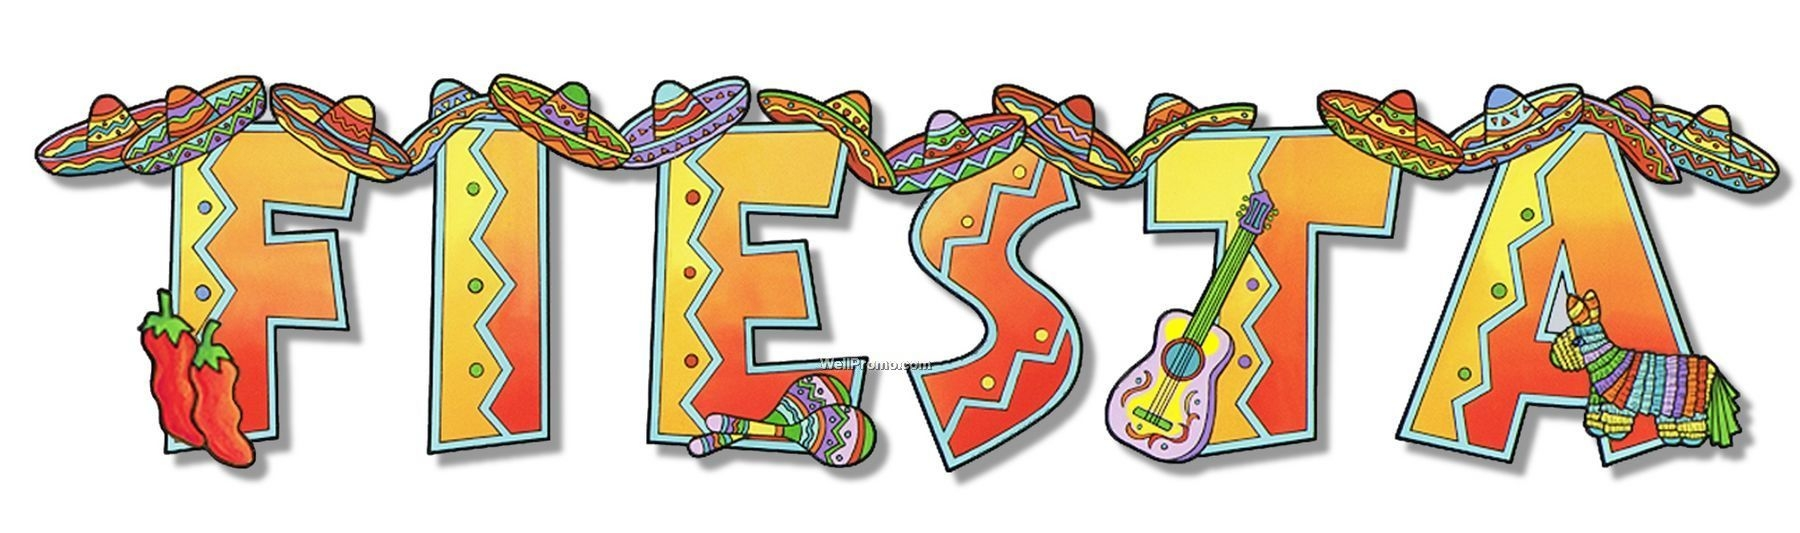 Fiesta clipart. Awesome collection digital r